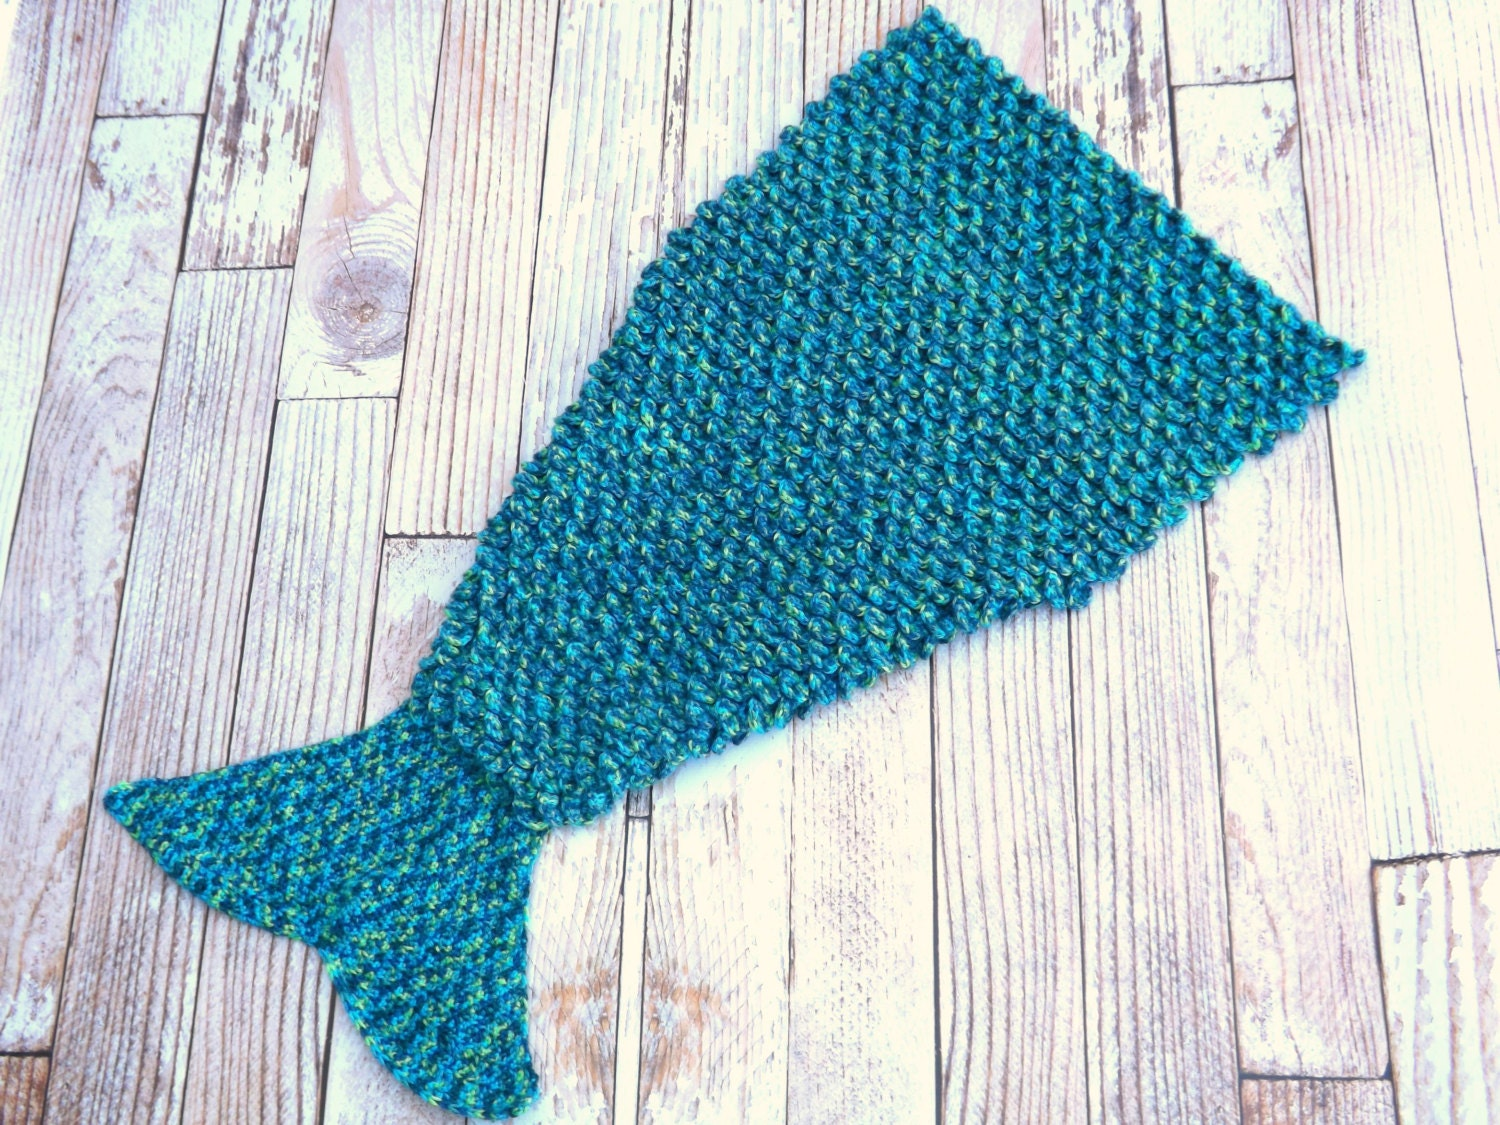 CROCHET PATTERN Mermaid Tail Blanket by JensTangledThreads